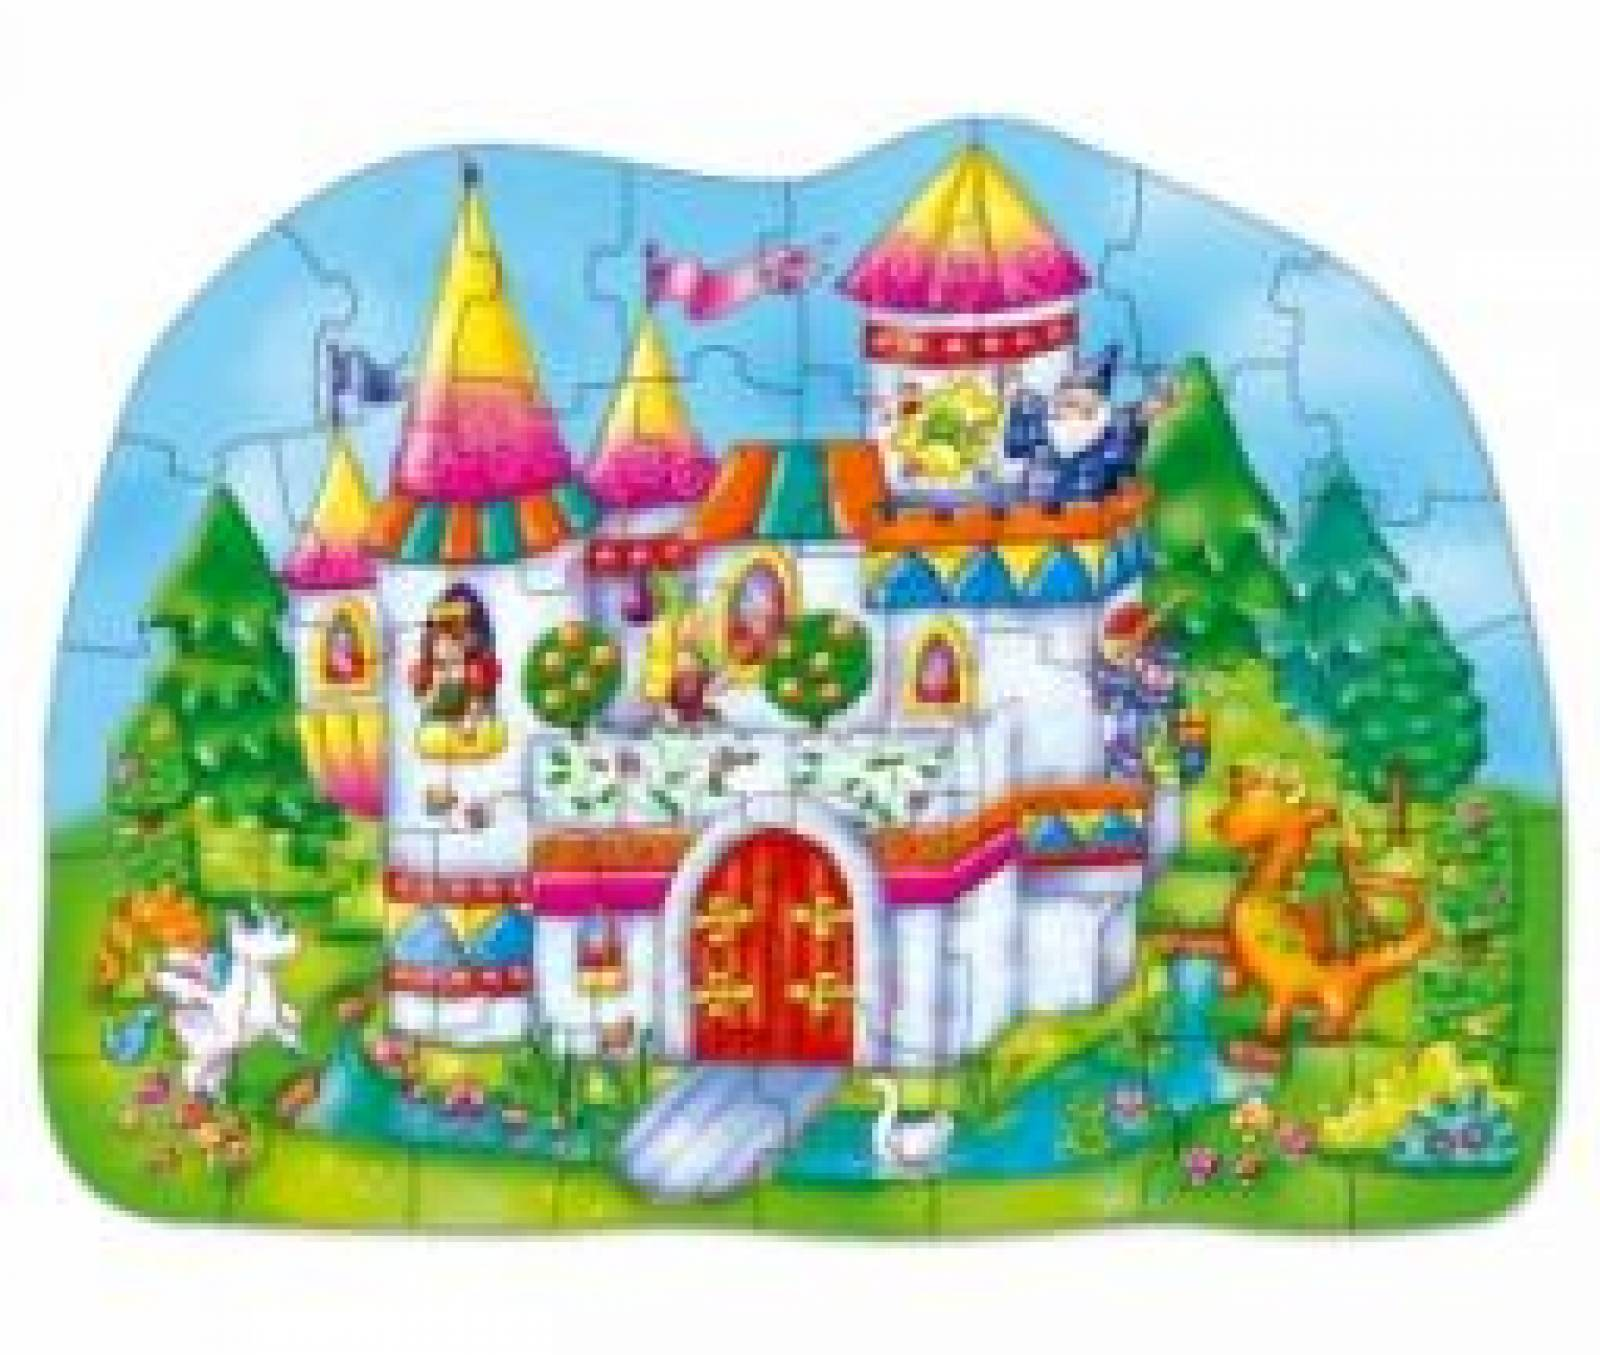 Big Magical Castle Puzzle Jigsaw By Orchard Toys 3-6yrs thumbnails